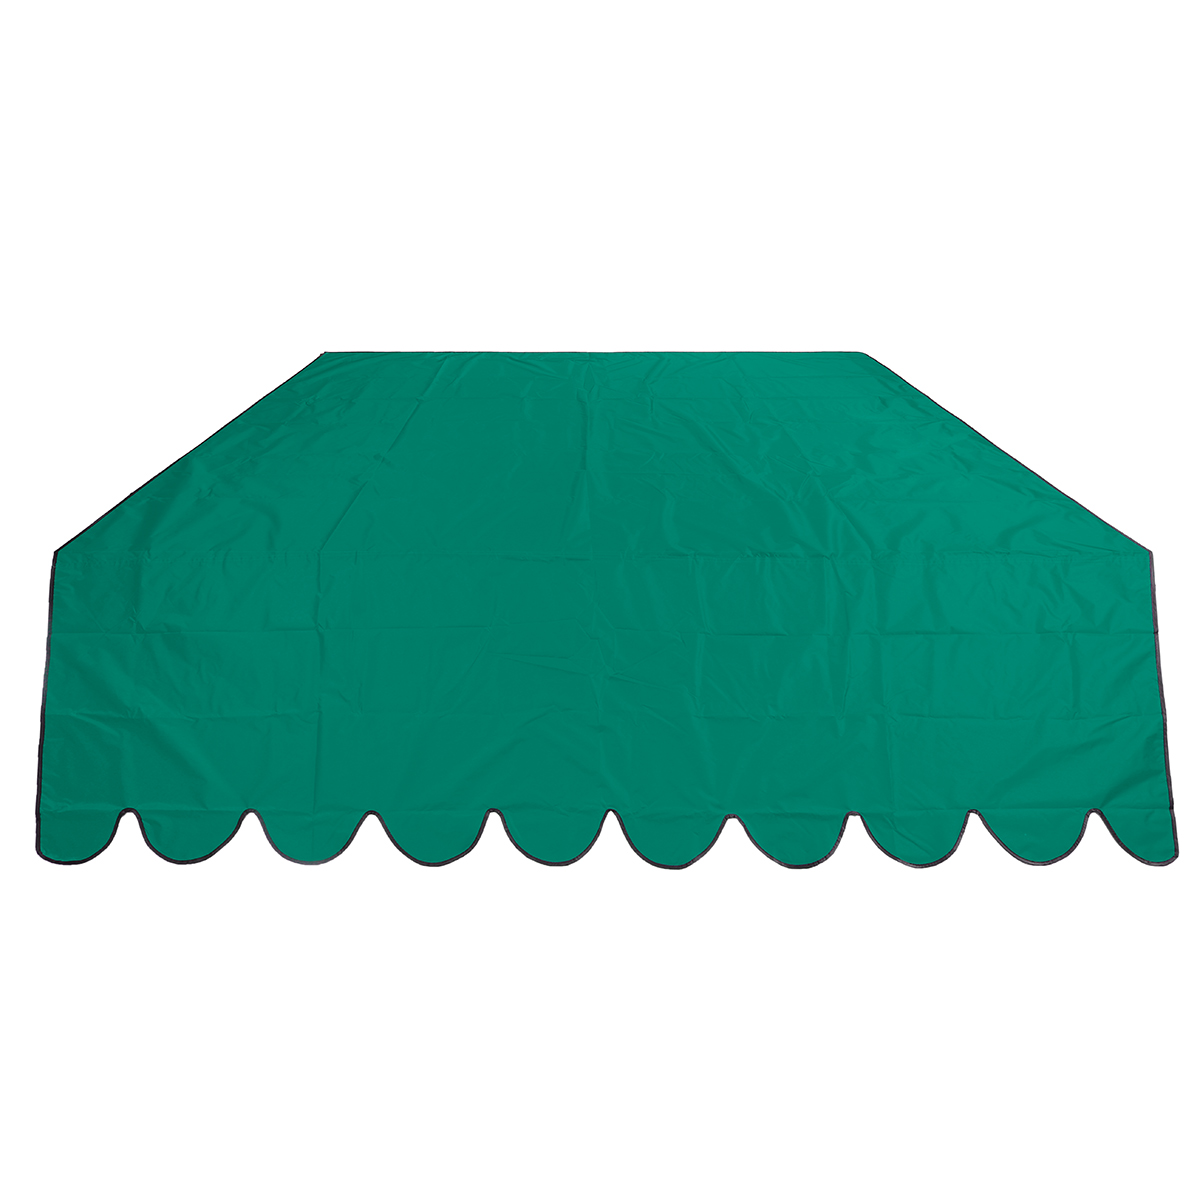 Boat Outdoor Garden Patio Awning Cover Canopy Sun Shade Shelter Waterproof